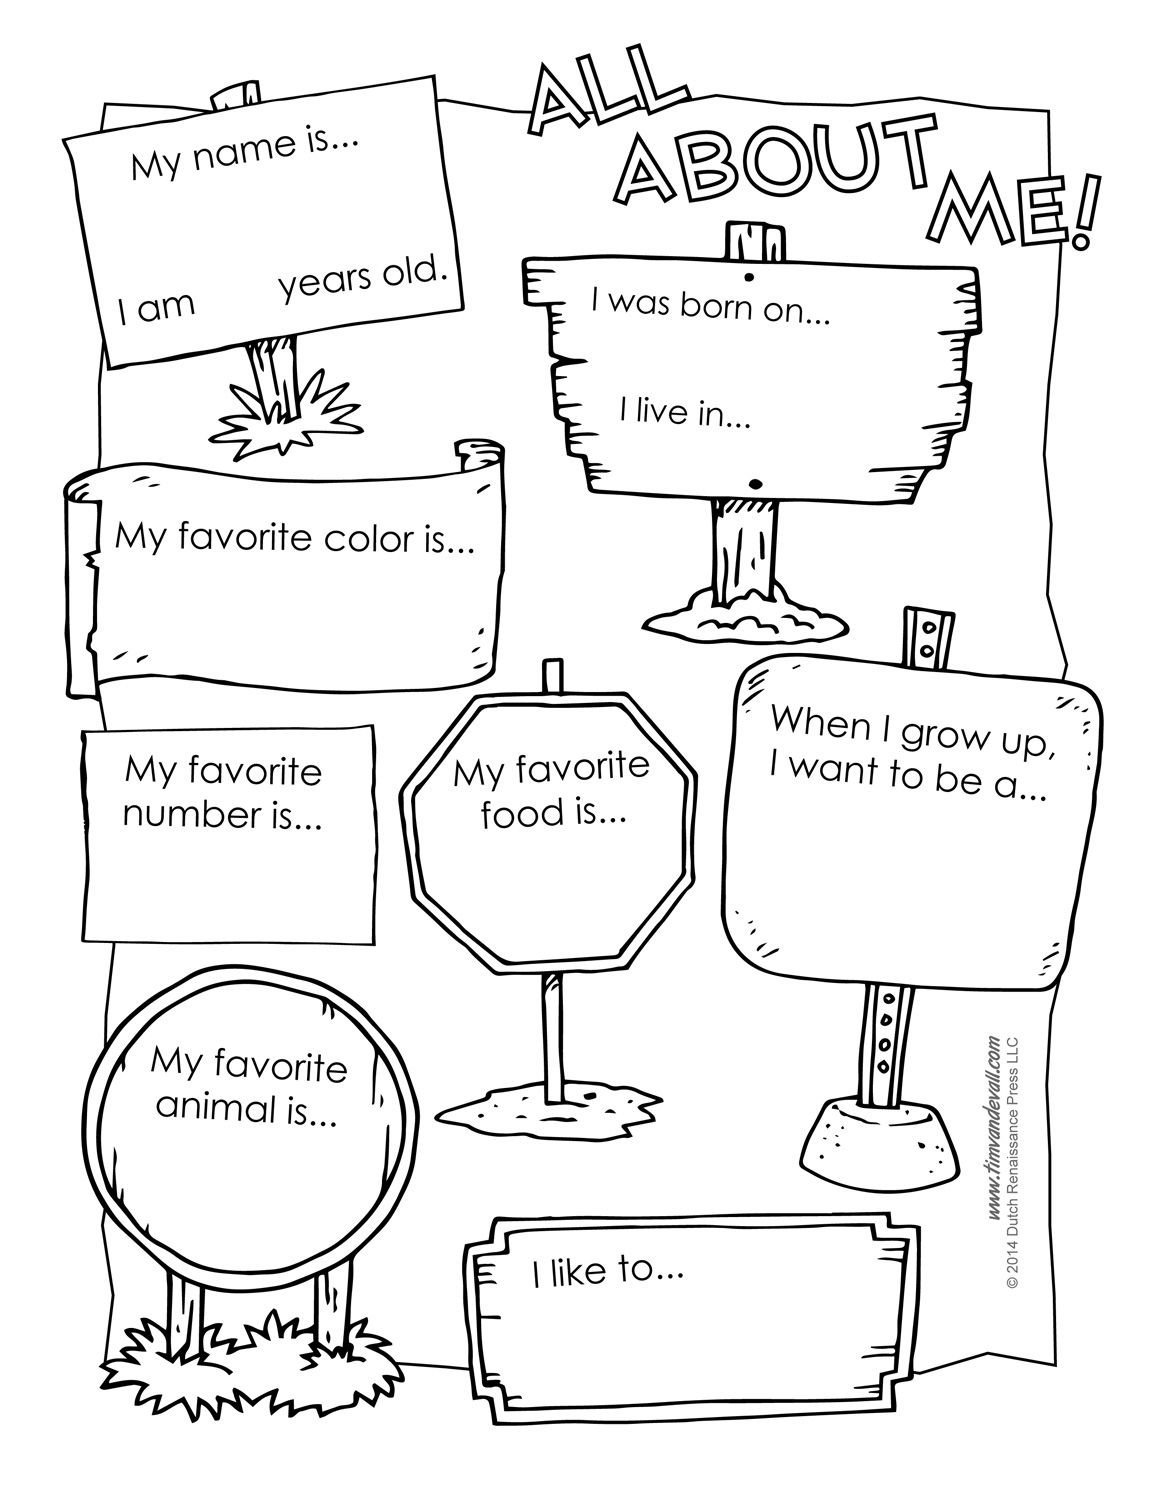 All About Me Preschool Template | 6 Best Images Of All About Me - All About Me Free Printable